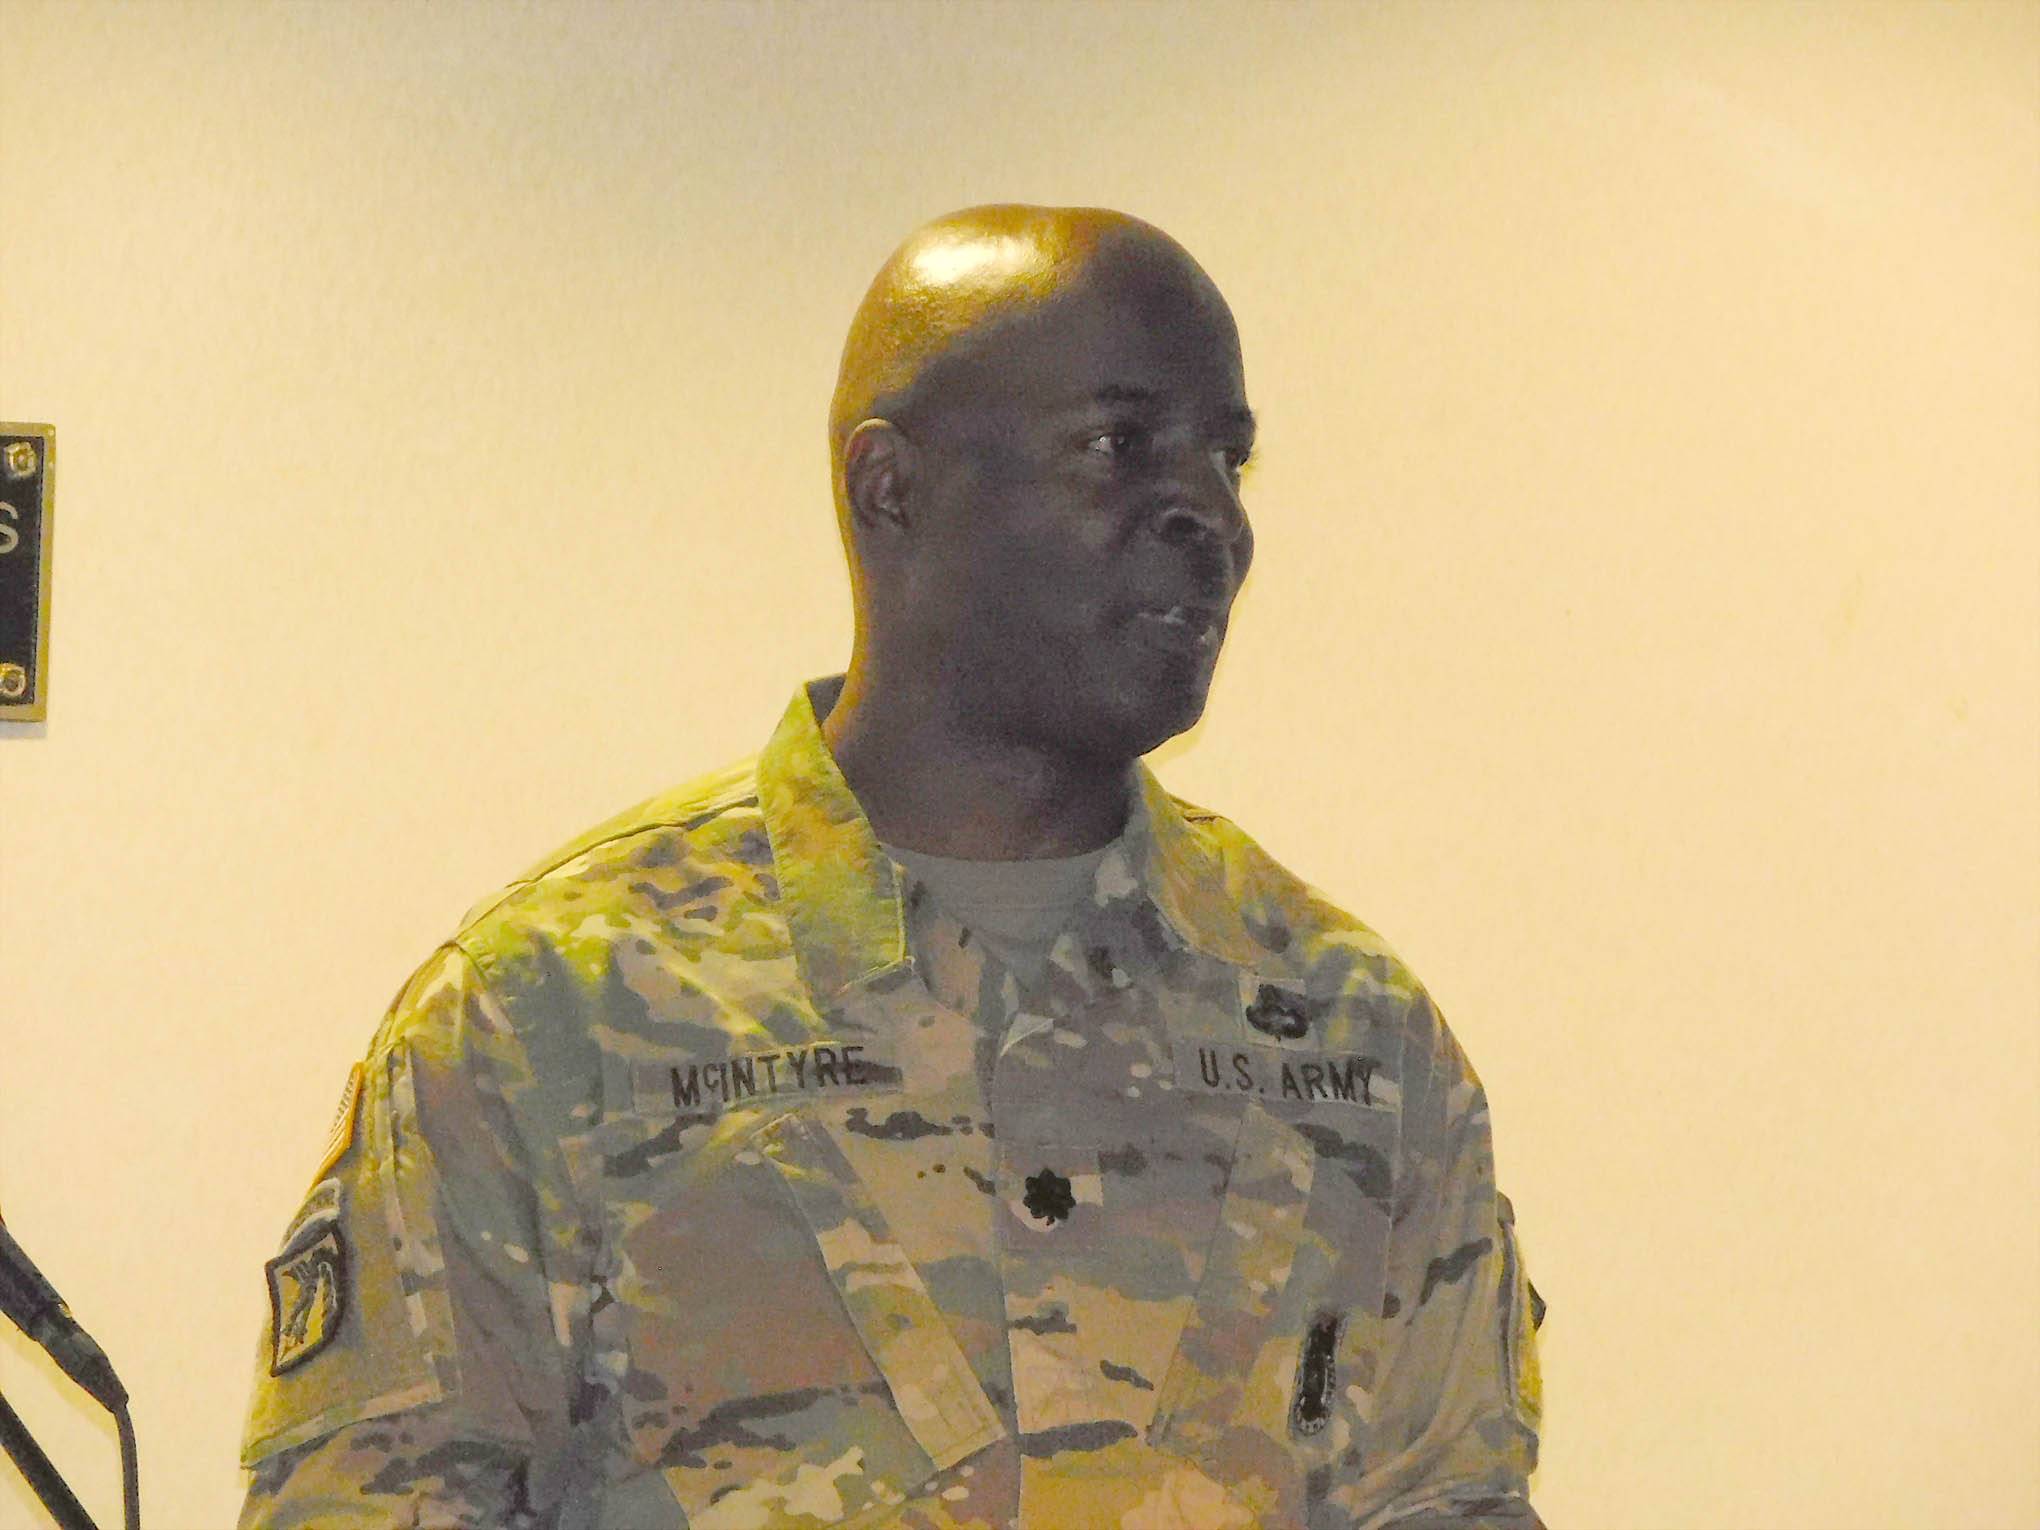 Click to enlarge,  Lt. Col. Ernest A. McIntyre Jr., U.S. Army (Ret.), Southern Lee High School JROTC Commander, was among the speakers in a program to honor veterans on Thursday, Nov. 9, at the Dennis A. Wicker Civic Center.